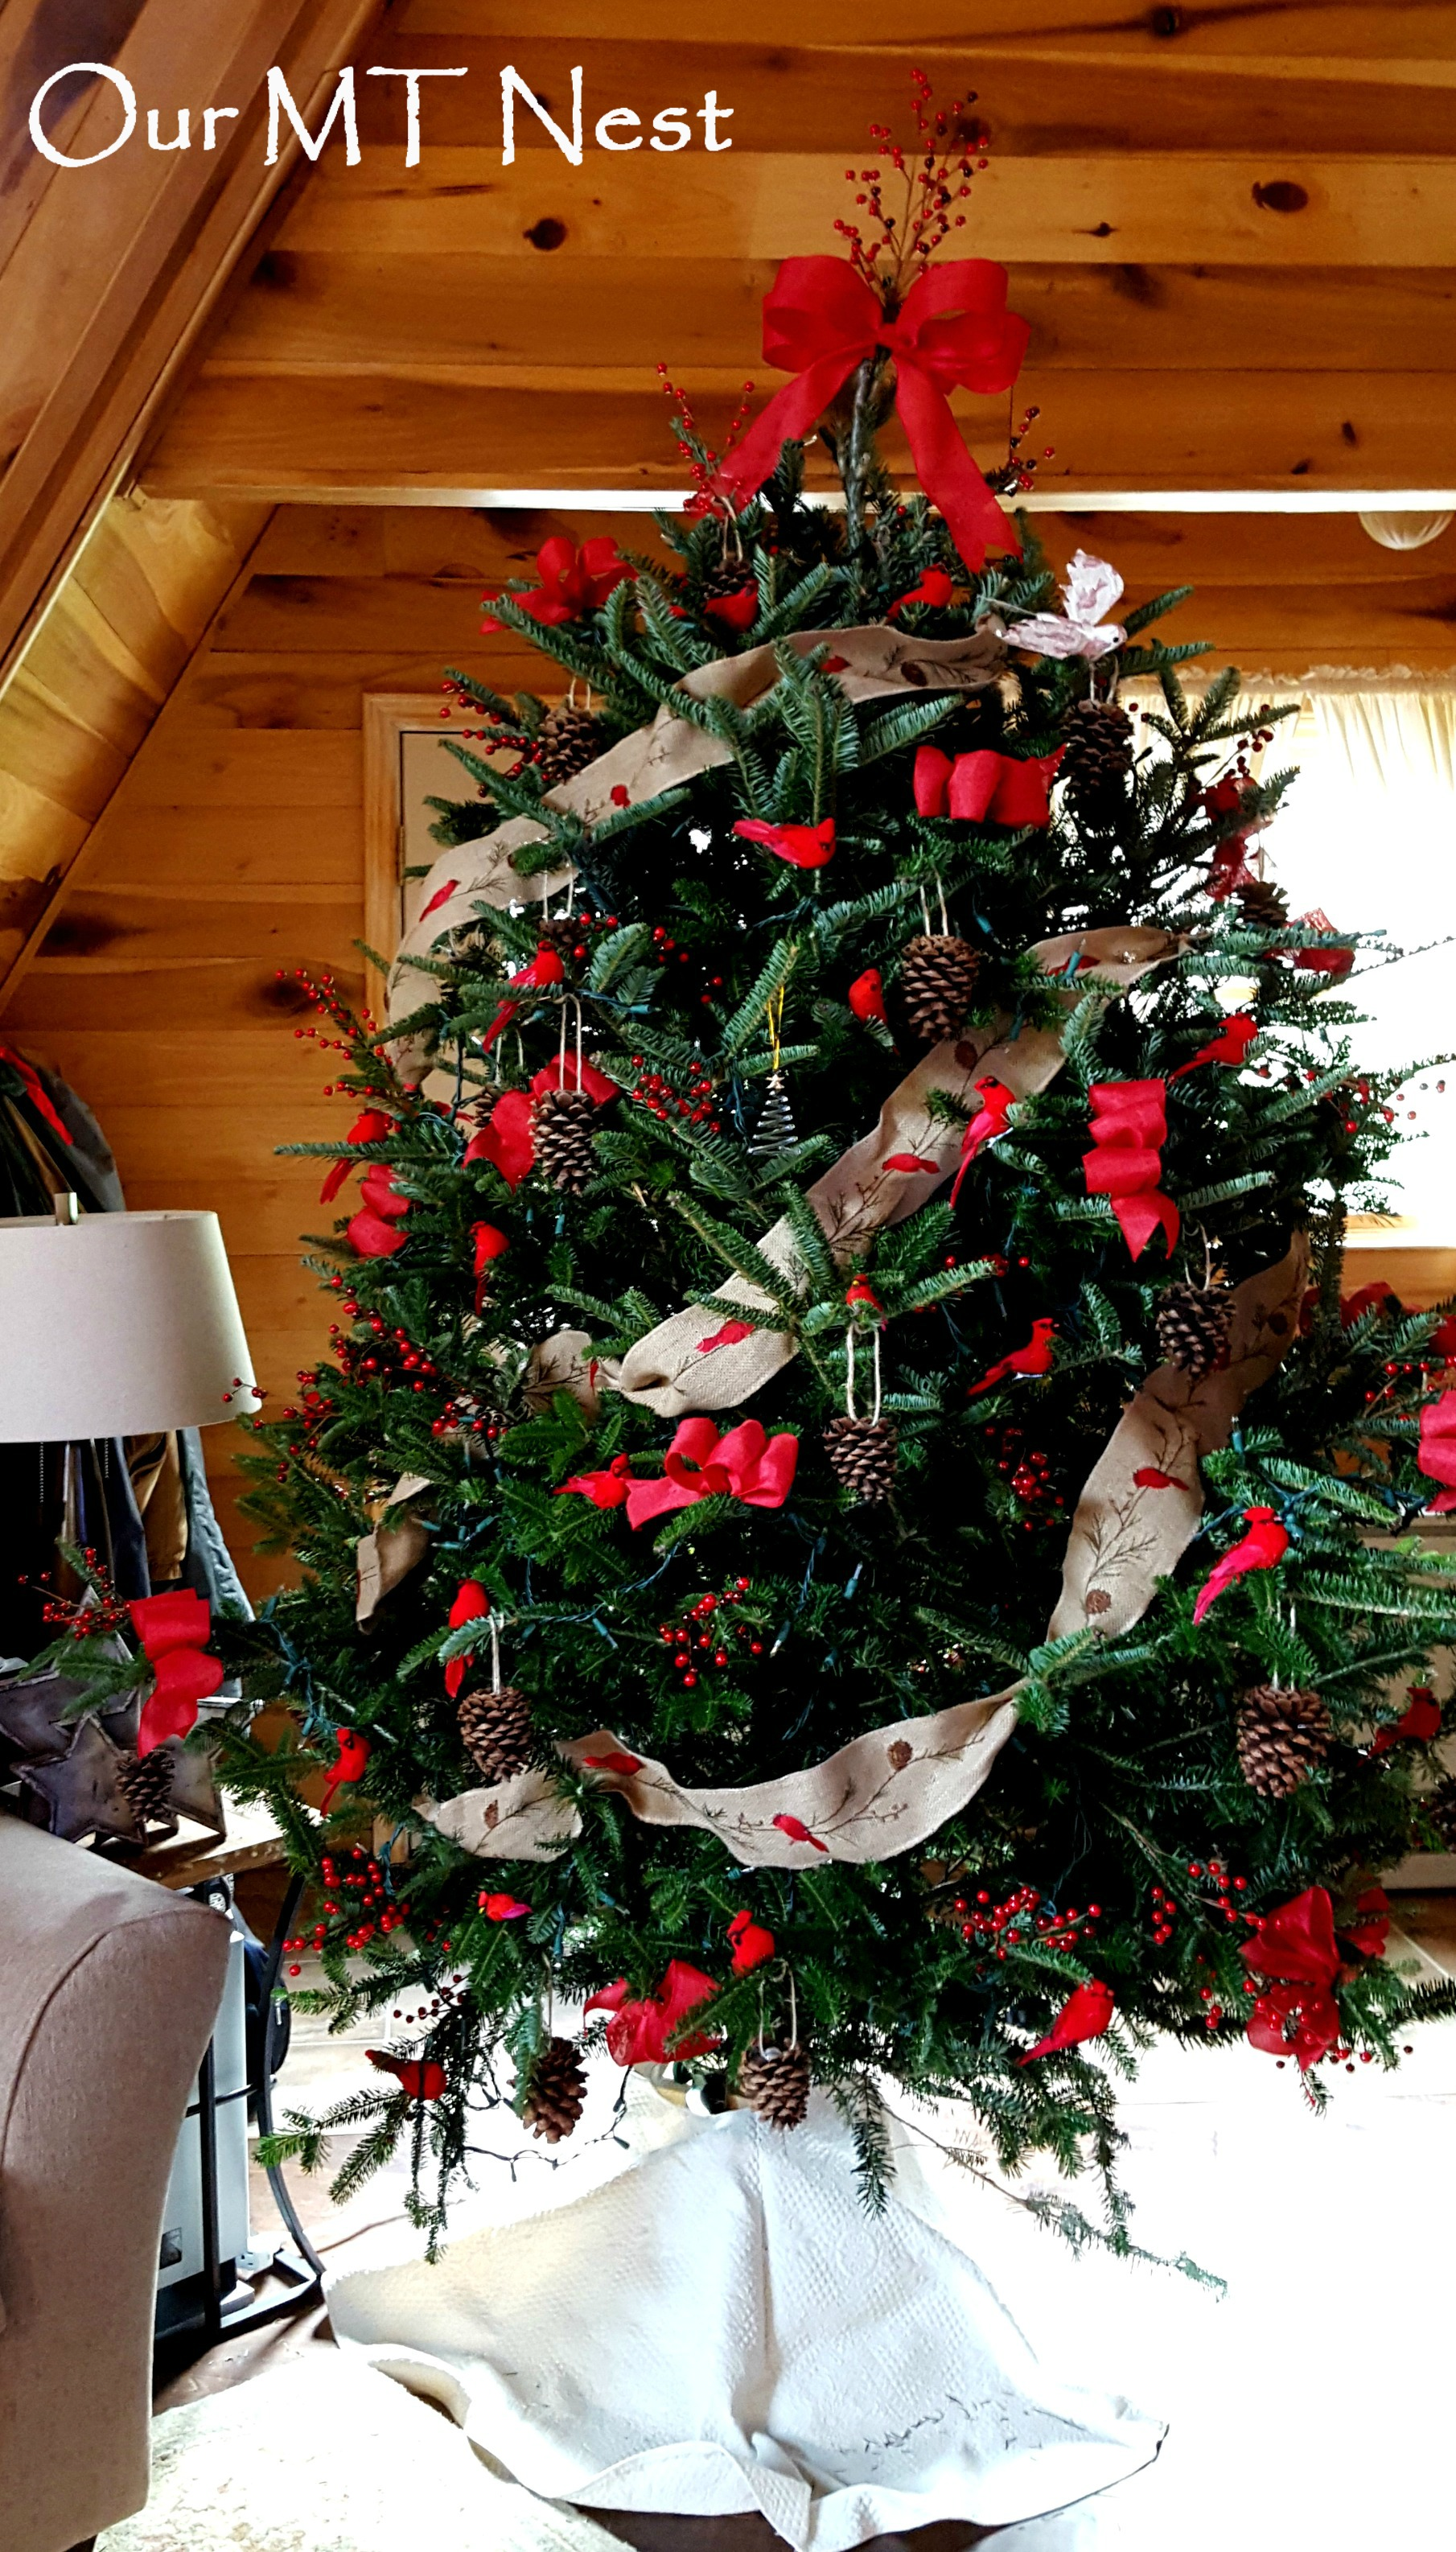 Christmas Tree 2015: Birds, Berries, and Bows